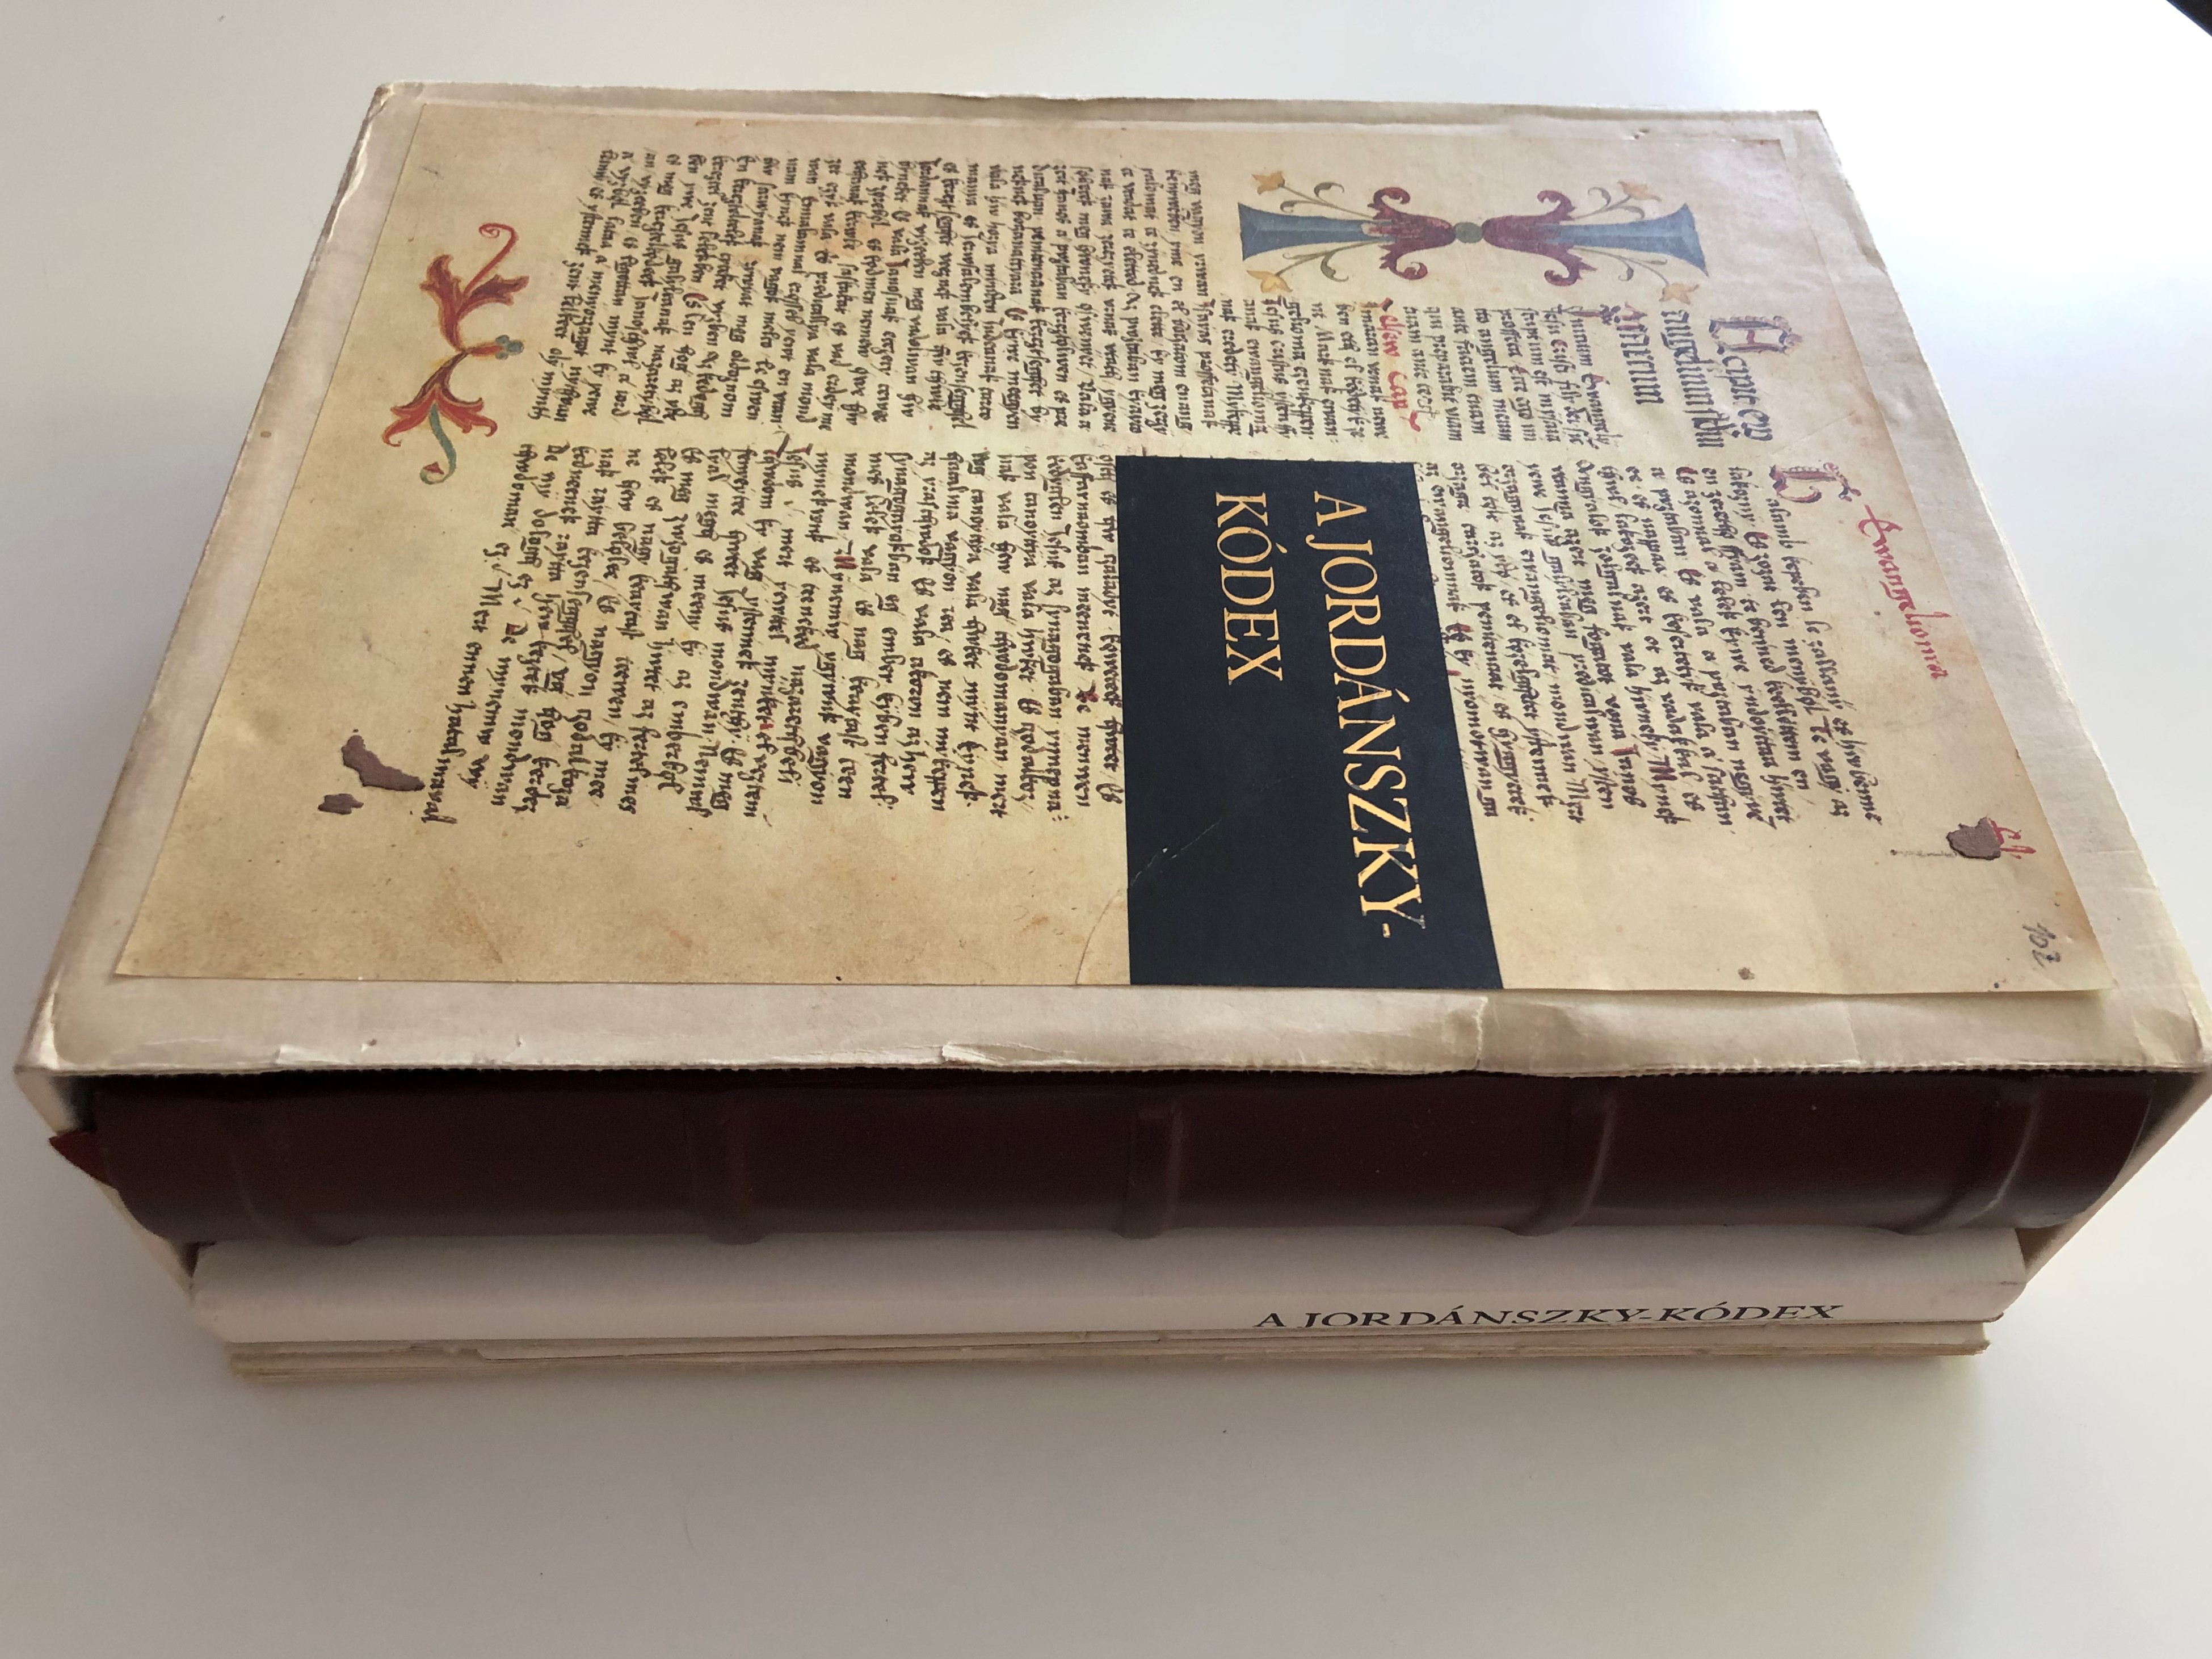 a-jord-nszky-k-dex-1516-1519-3-book-set-hungarian-codex-reprint-containing-bible-translation-from-the-beginning-of-the-16th-century-transcription-of-the-codex-reading-help-and-essay-by-csaba-csapodi-helikon-kiad-1-.jpg